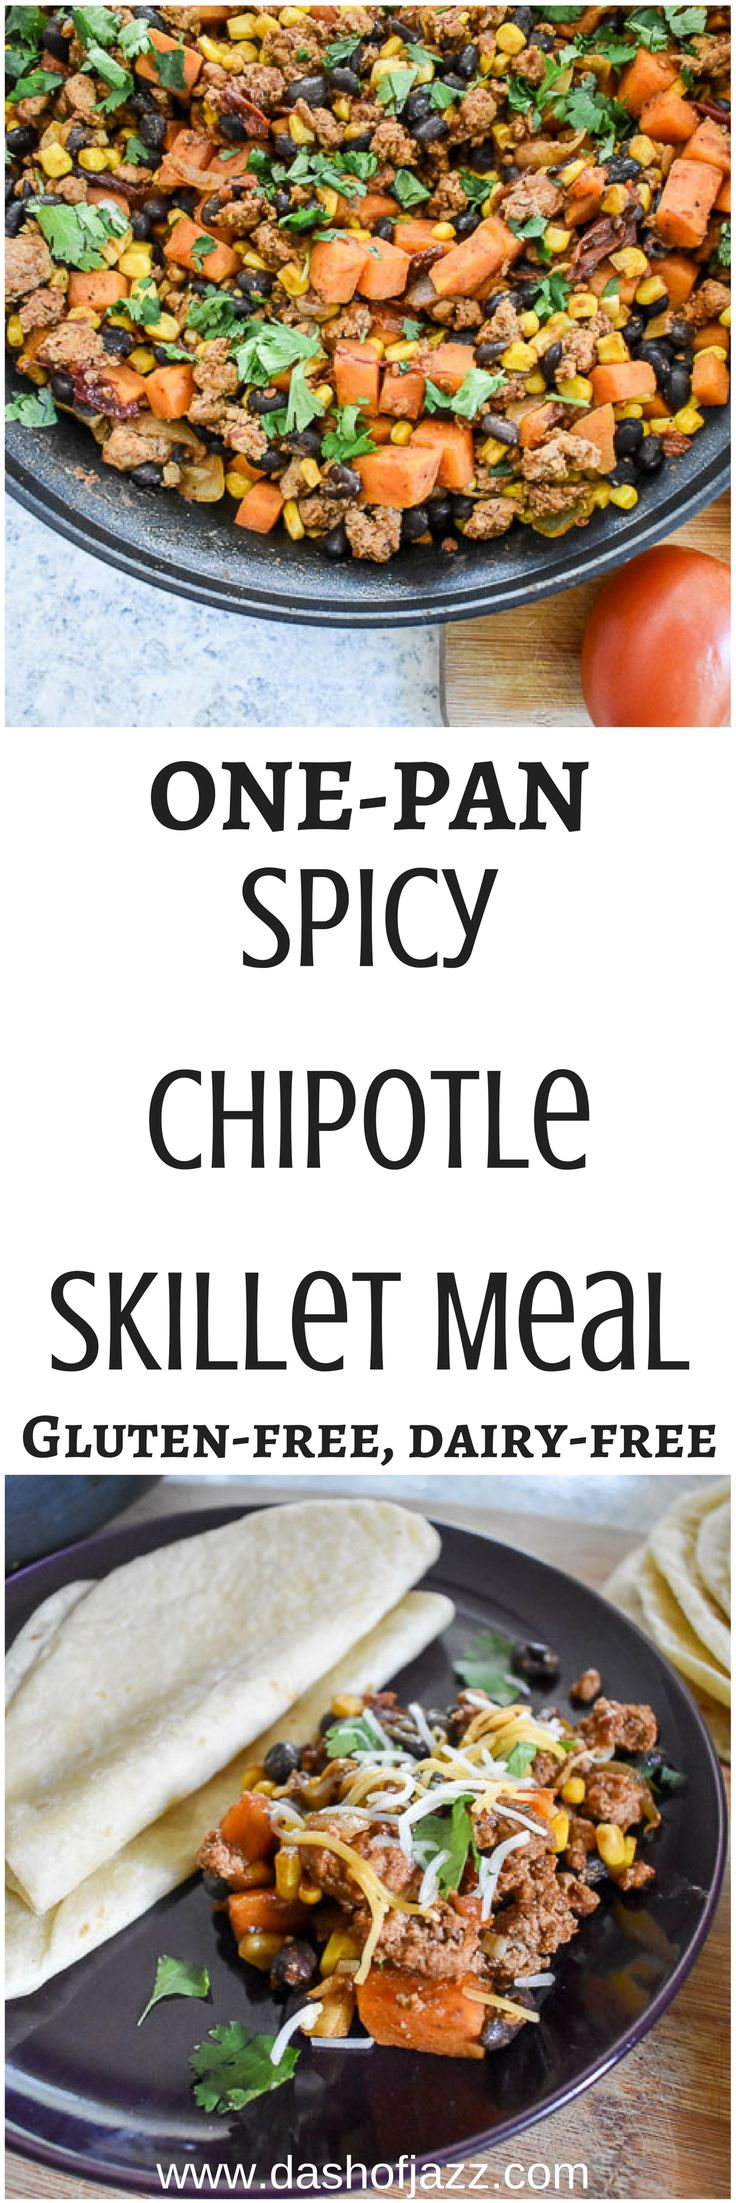 Spicy Chipotle Skillet Meal comes together in under an hour in one pan and is full of flavor and good for your ingredients. Serve it over rice, wrapped up in a tortilla, with a salad, or by itself. Gluten free, dairy free, and ready in under 45 minutes! Recipe by Dash of Jazz #vivalamorena #ad @lamorenausa